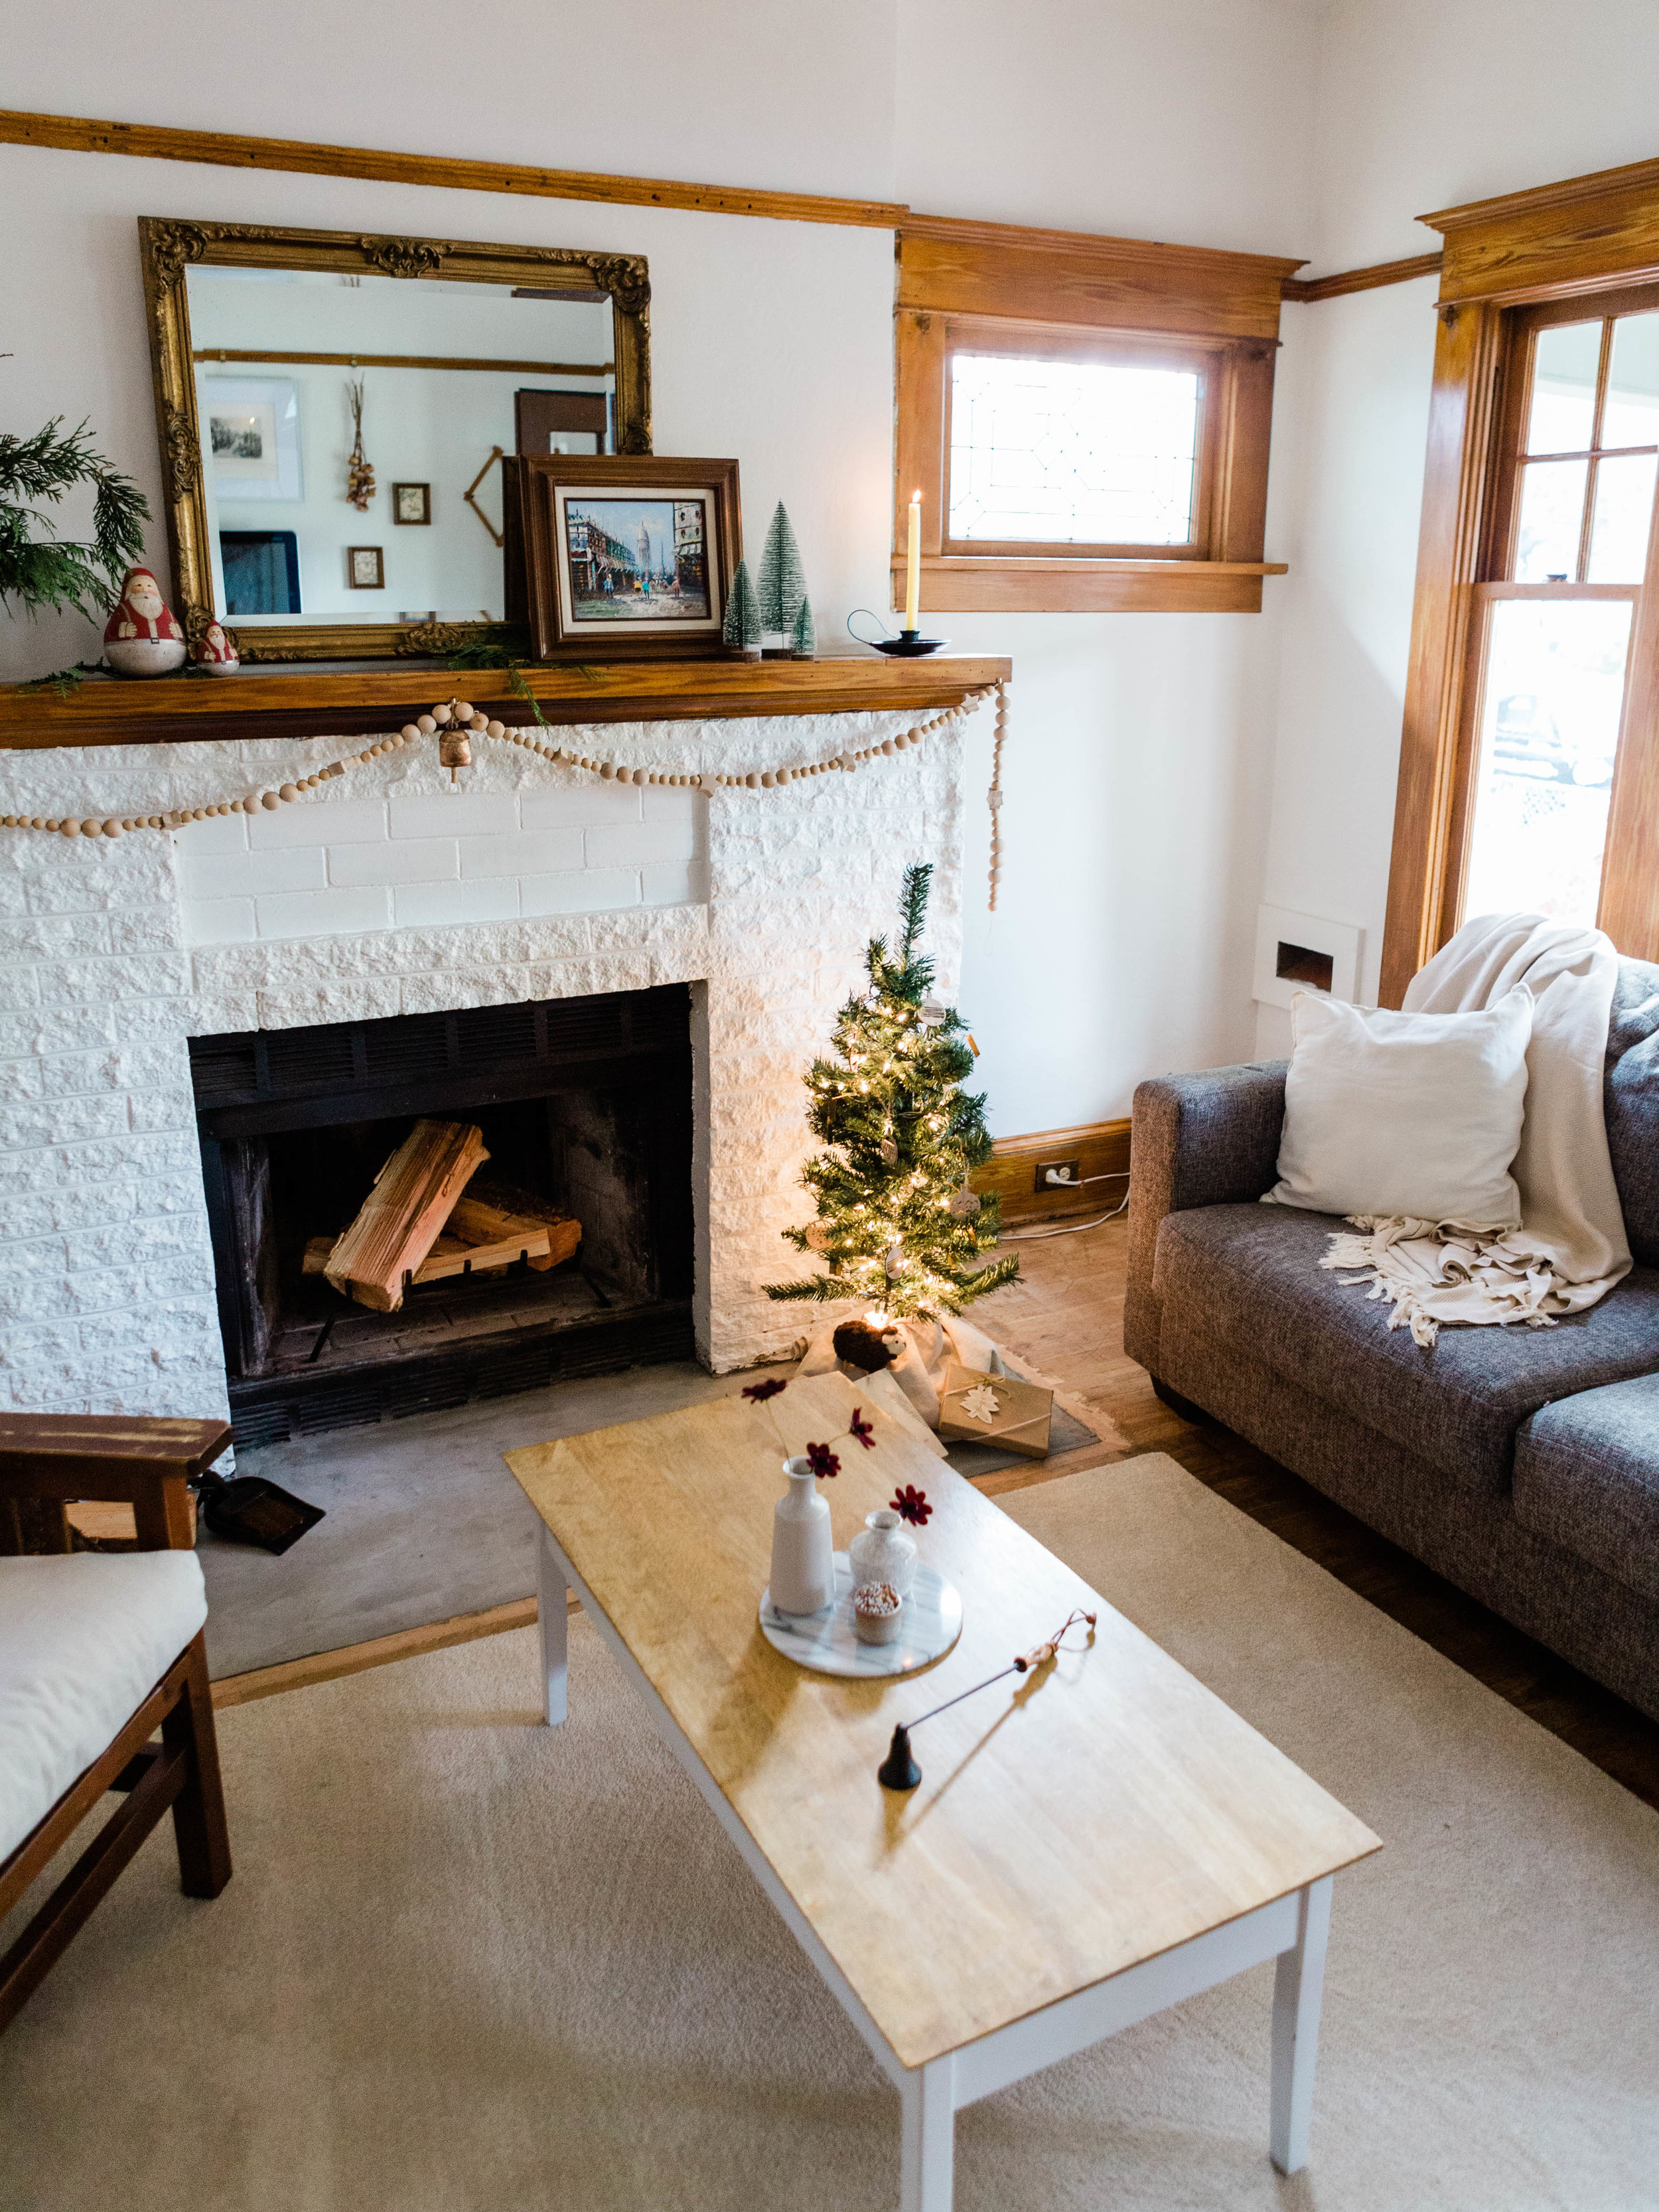 Simple and minimal living room Christmas decor from Foragedhome.com